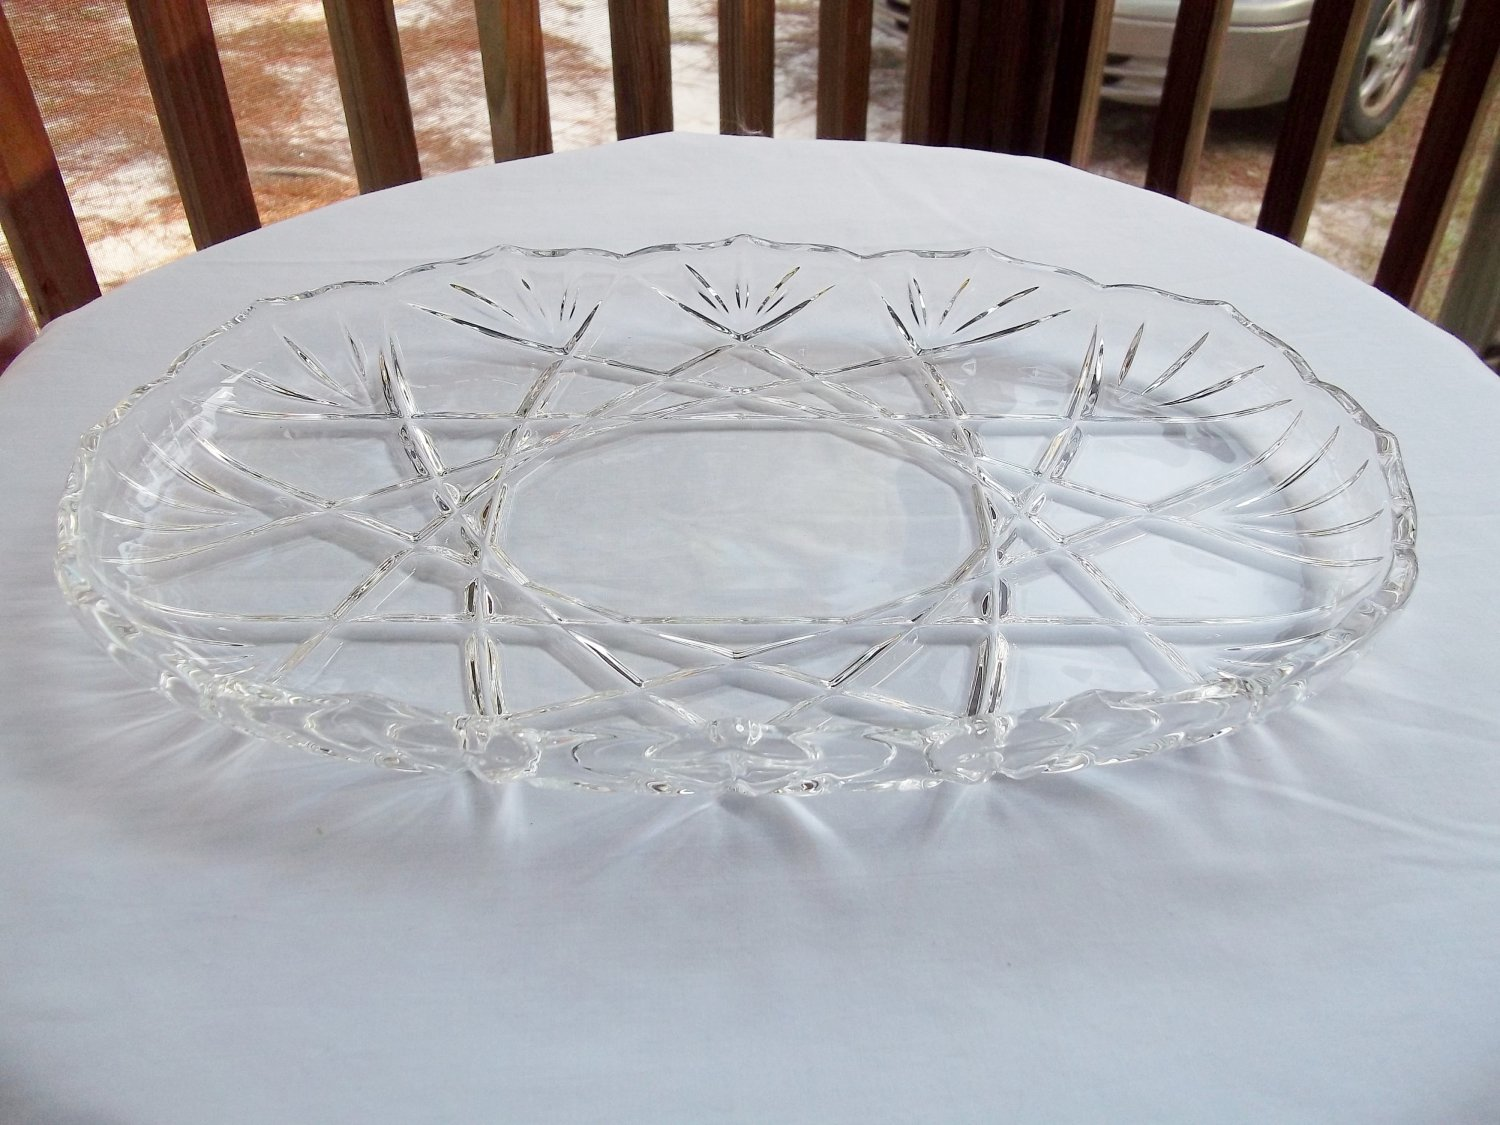 LARGE CLEAR PRESSED GLASS OVAL PLATTER